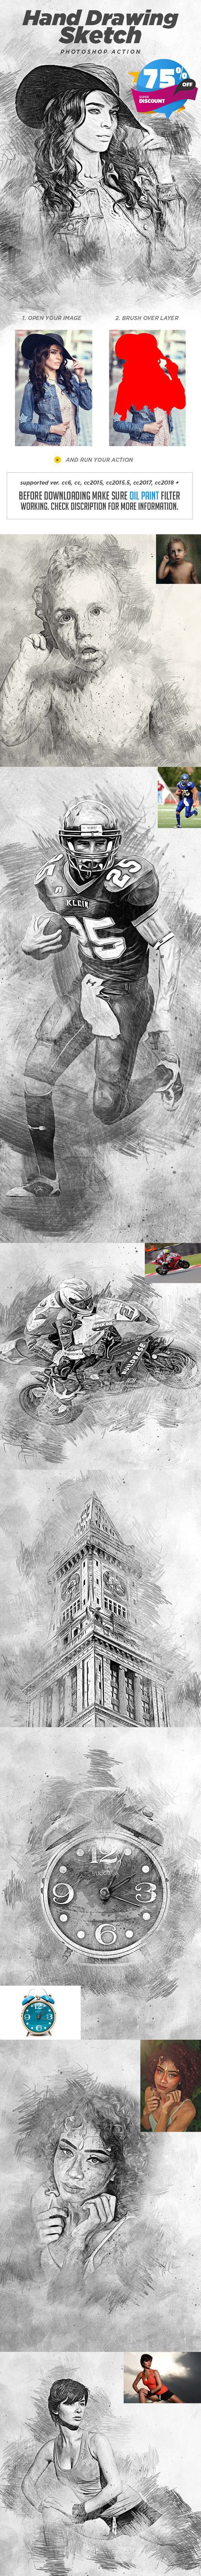 Hand Drawing Sketch Photoshop Action - Photo Effects Actions